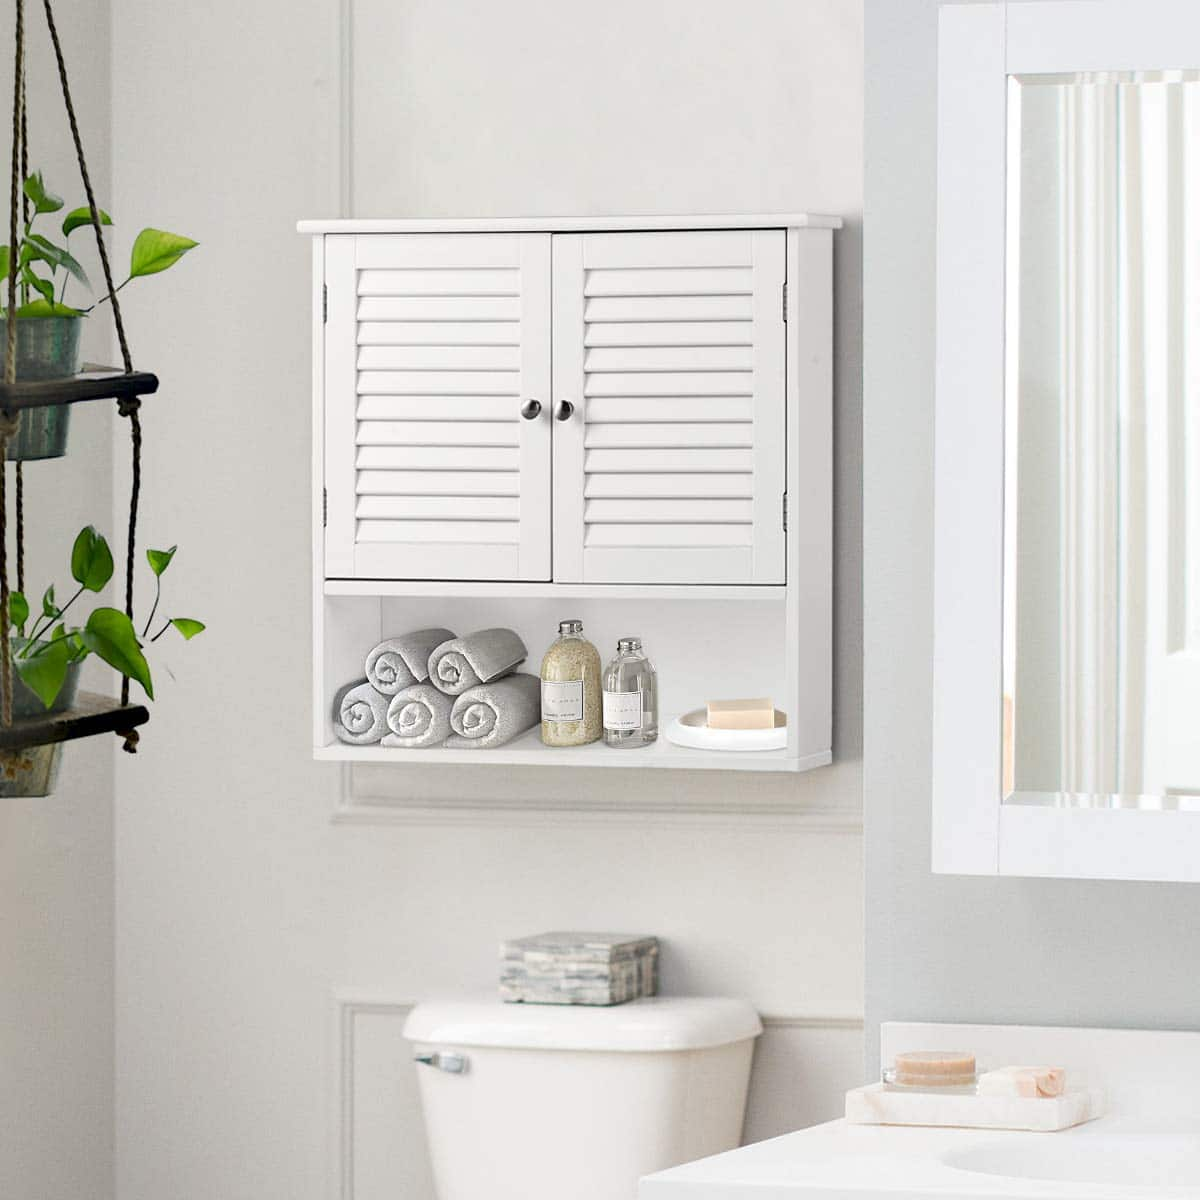 Top 10 Best Bathroom Wall Cabinets in 2020 Reviews | Buyer's Guide